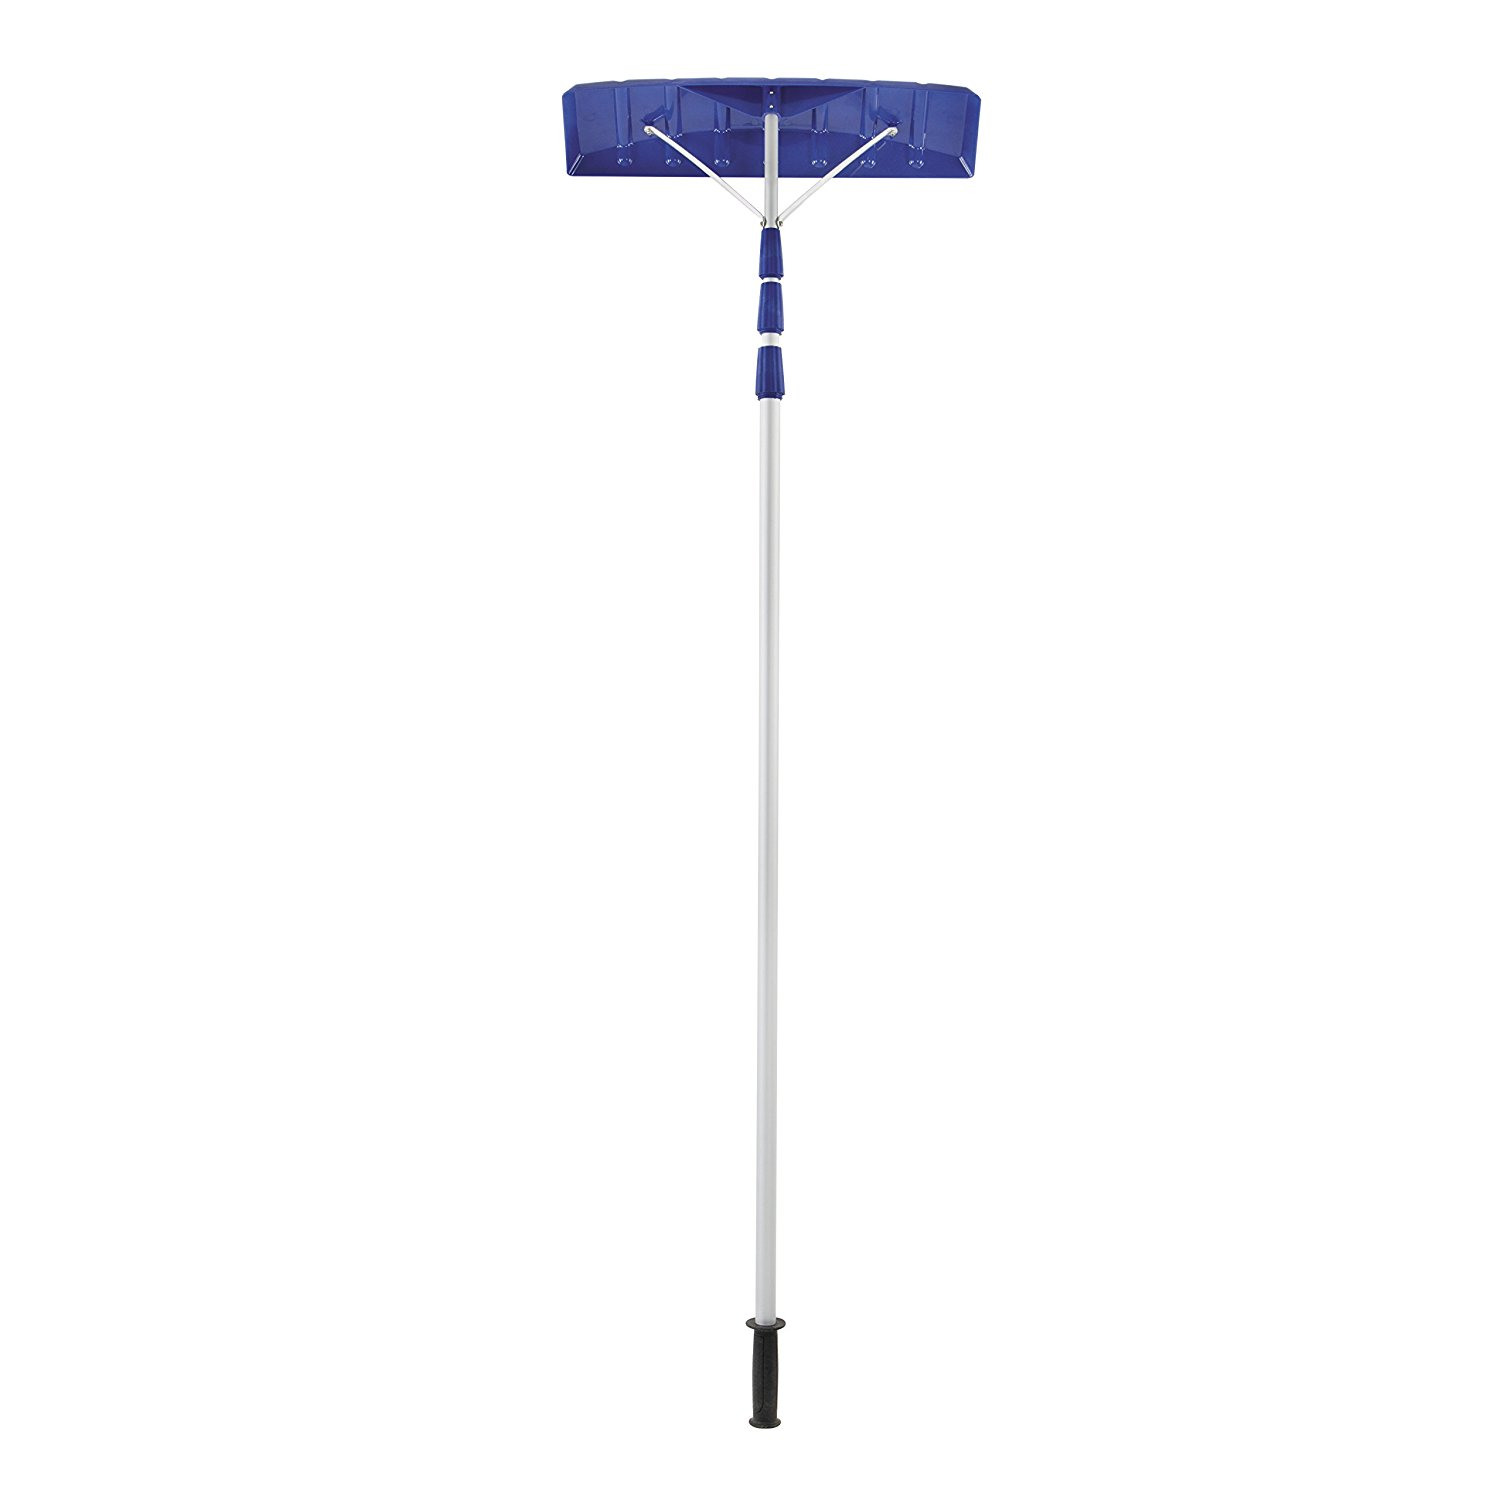 "Snow Joe RJ204M 21' Twist-n-Lock Telescoping Snow Shovel Roof Rake with 6"" by... by Roof Rakes"